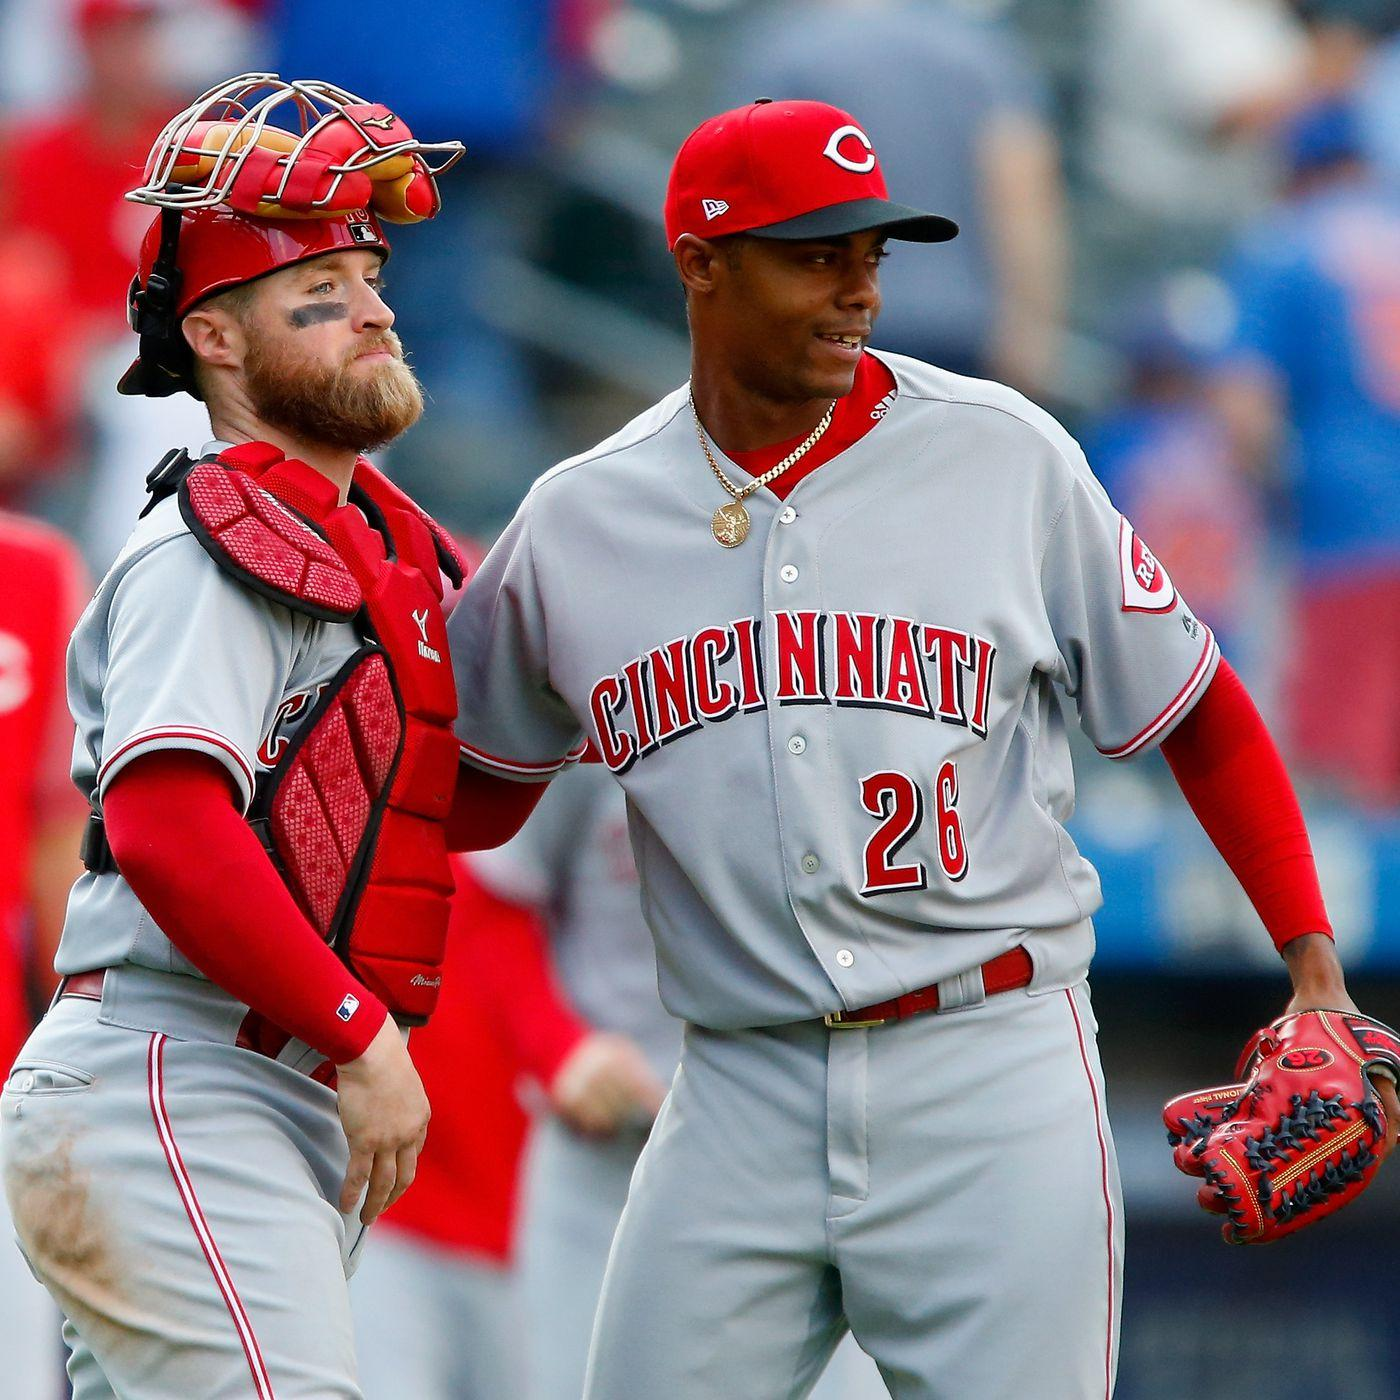 The Minnesota Twins are interested in Raisel Iglesias